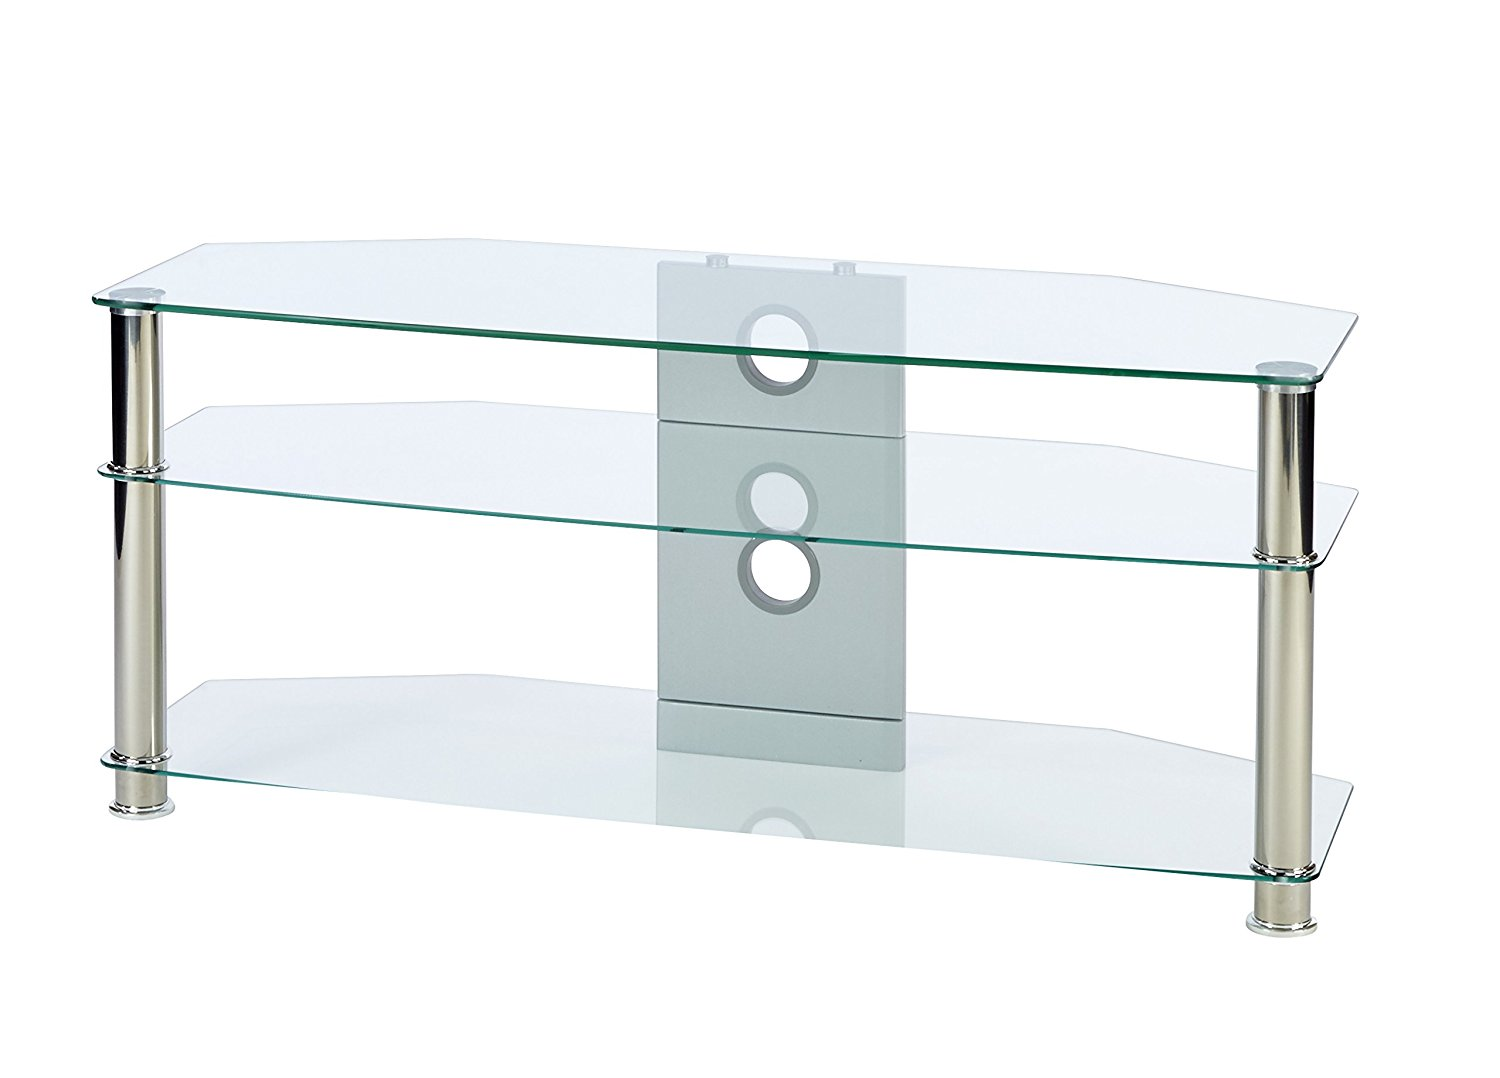 425136b69a33 Cheap Glass Tv Stand 42 Inch, find Glass Tv Stand 42 Inch deals on ...